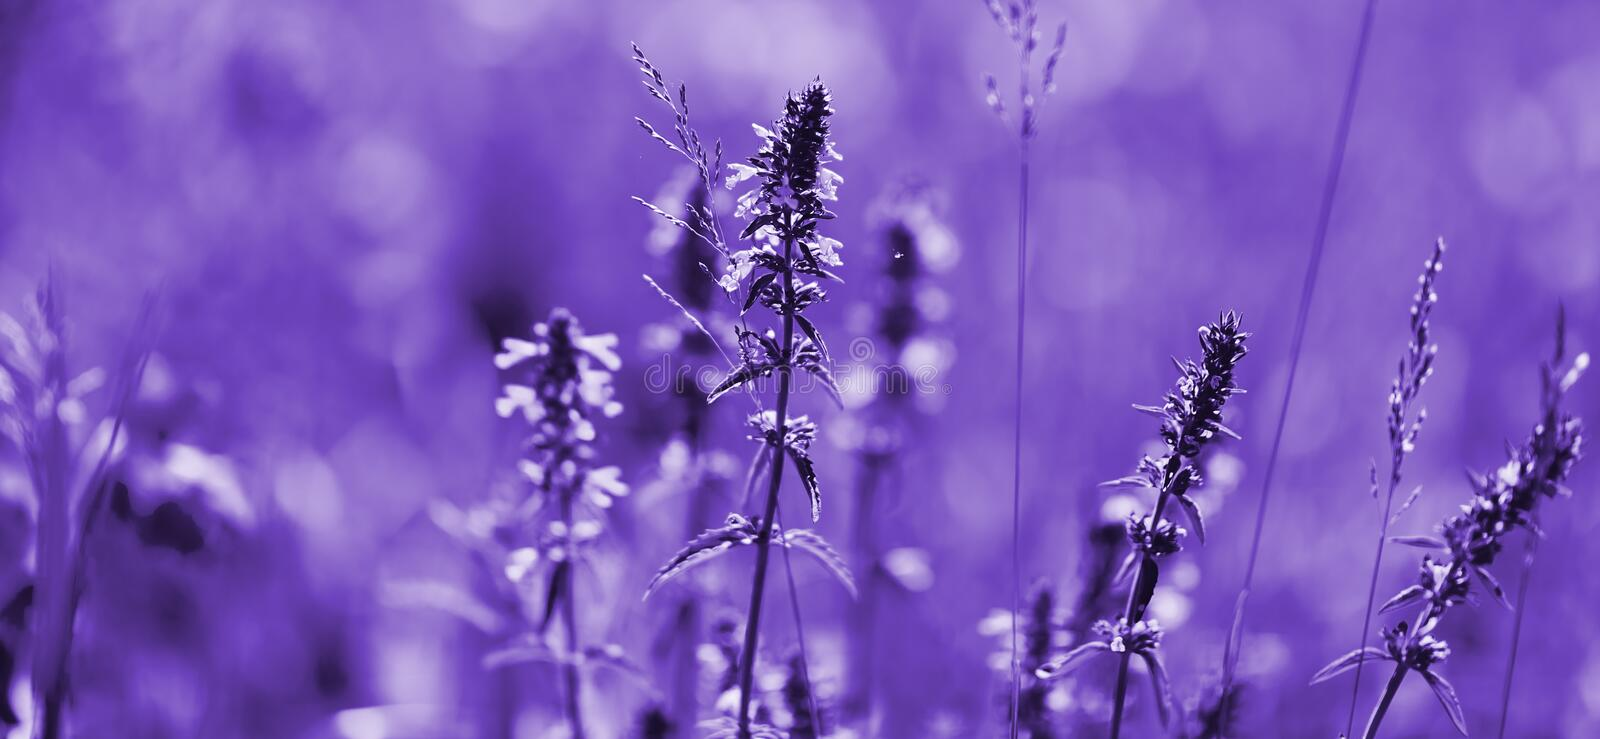 Lavender flowers of ultraviolet tones. Violet lavender field with soft light effect for your floral background.  royalty free stock photos